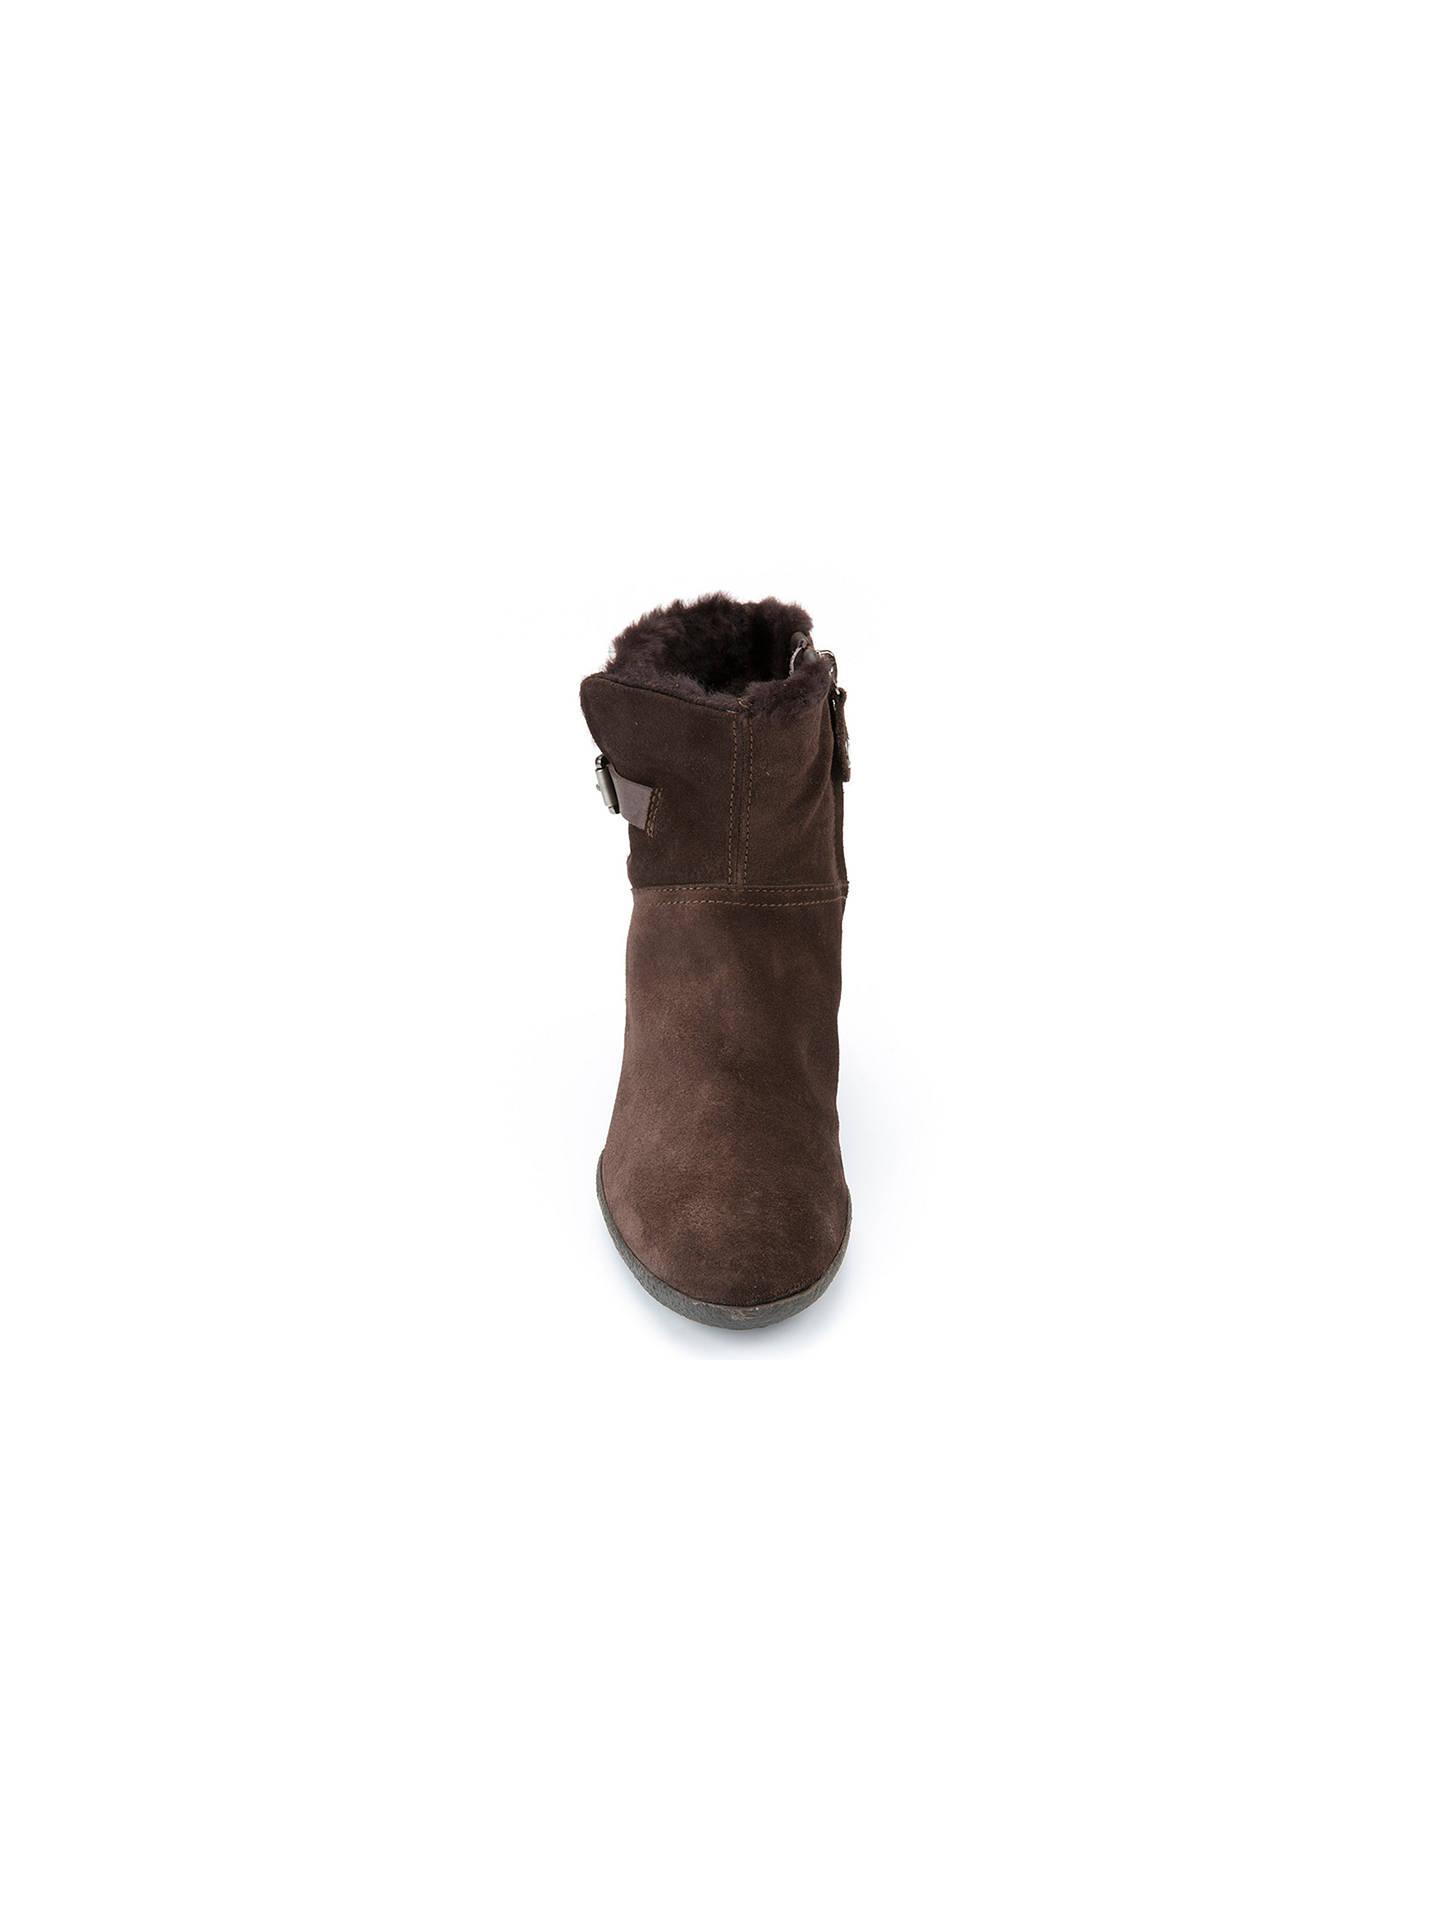 ... BuyGeox Amelia Wedge Ankle Boots, Coffee, 3 Online at johnlewis.com ... 3b6f8e913123